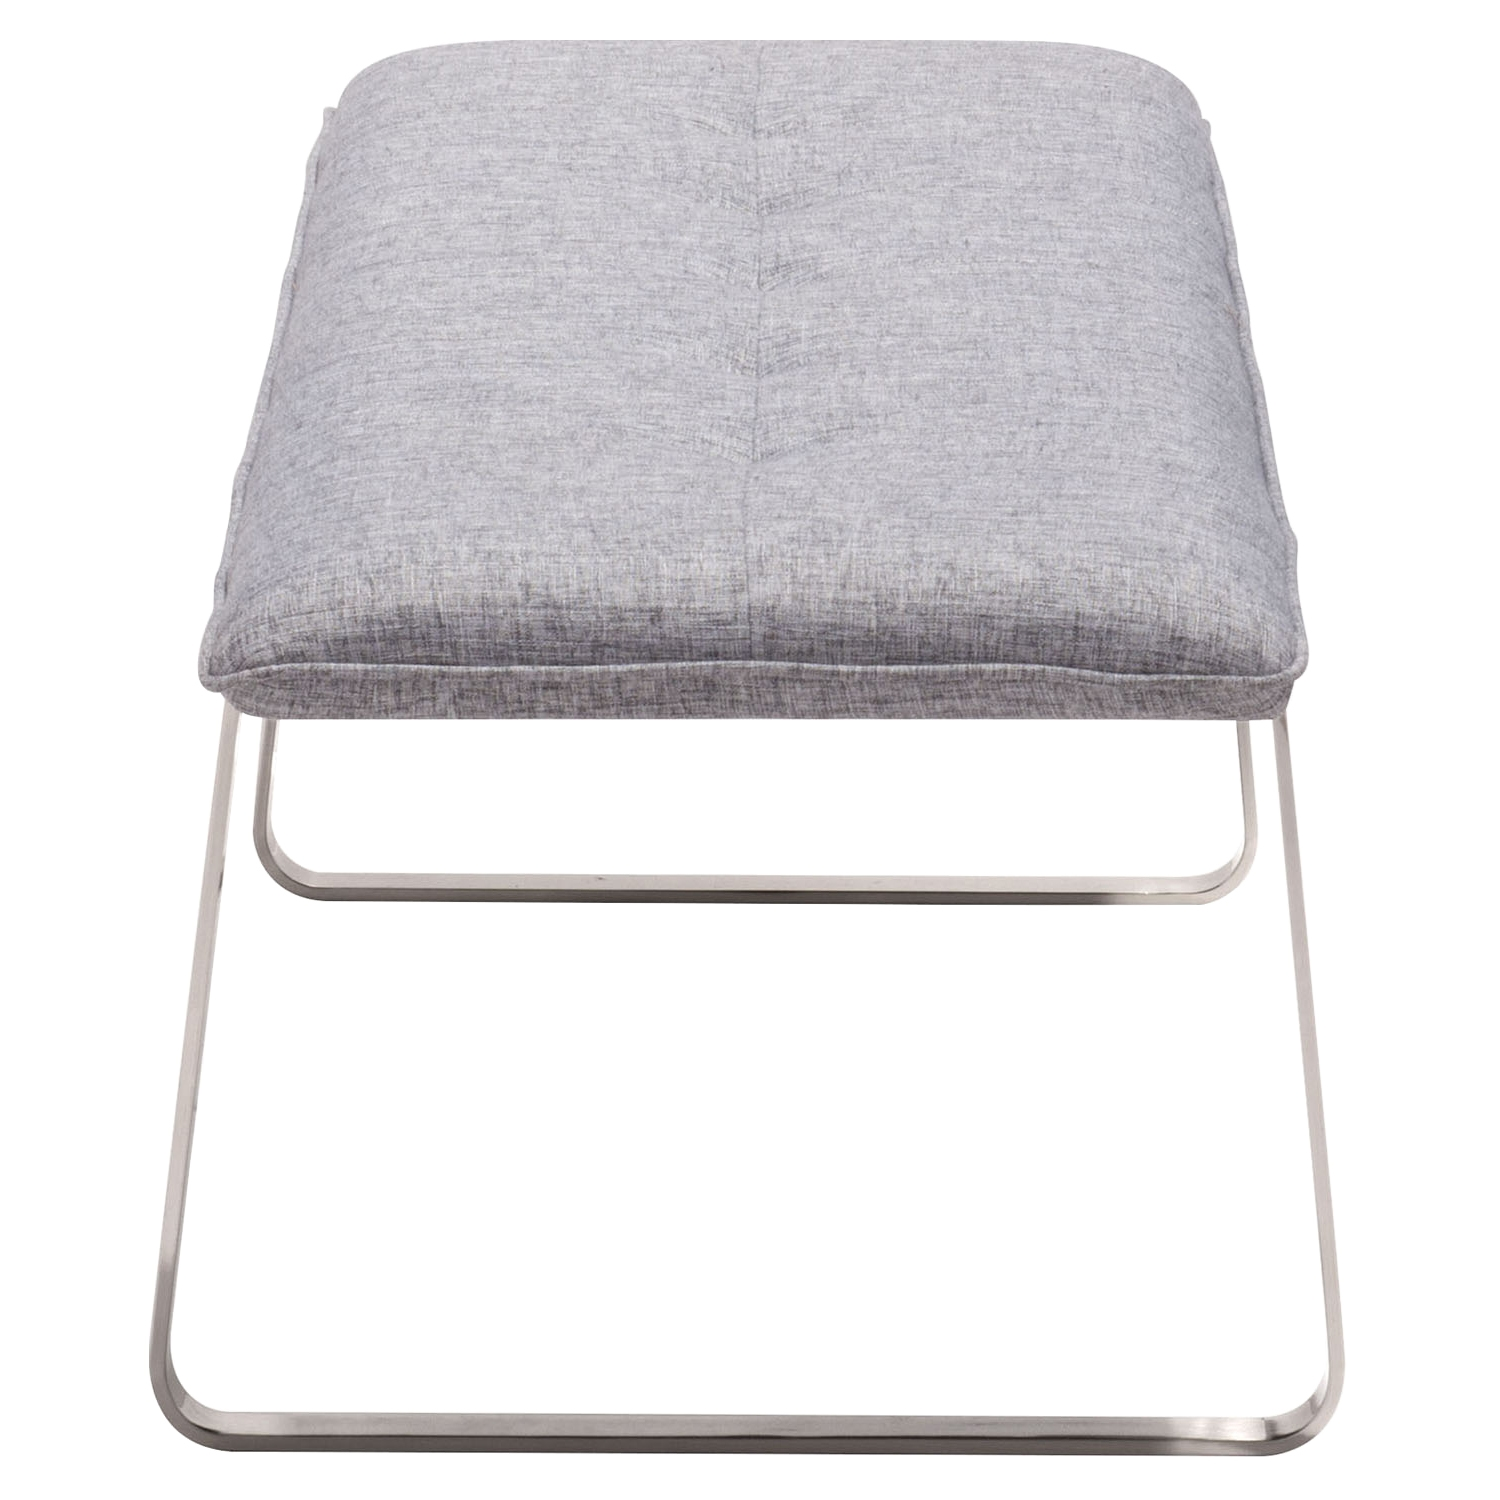 Cartierville Bench - Tufted, Gray - ZM-500187